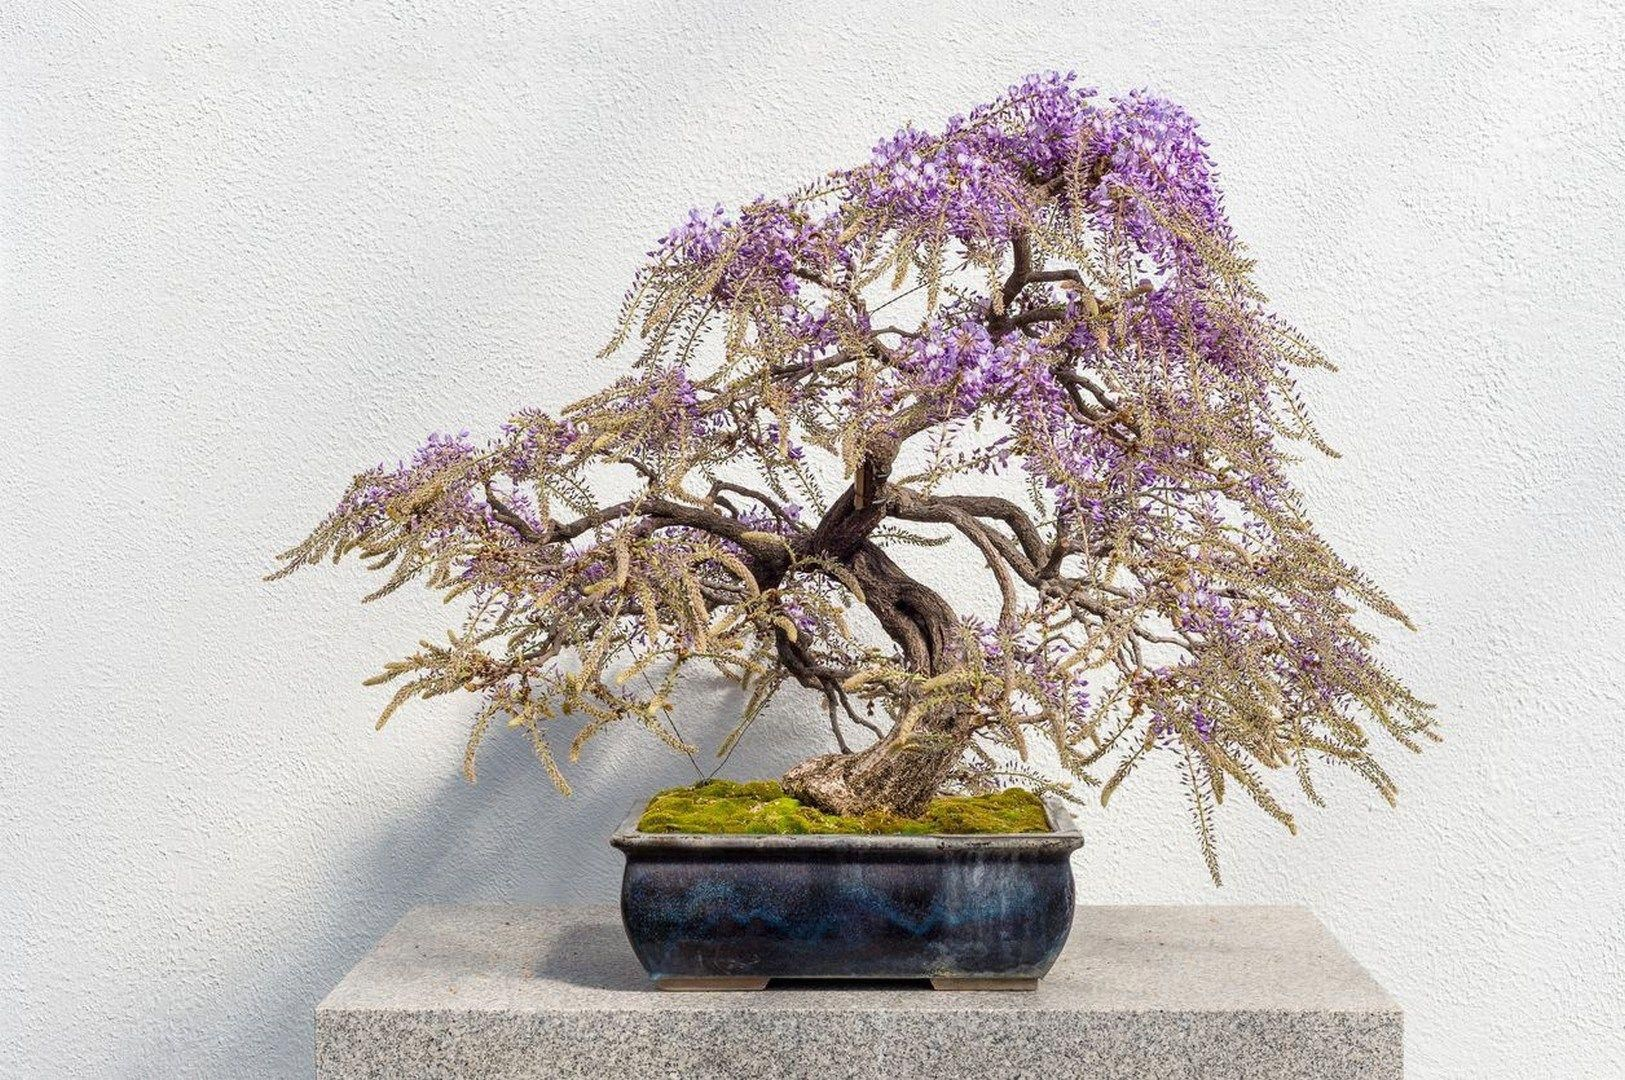 25 How To Grow Wisteria In A Pot 1 Bonzaitree Bonsai Tree Types Wisteria Bonsai Flowering Bonsai Tree